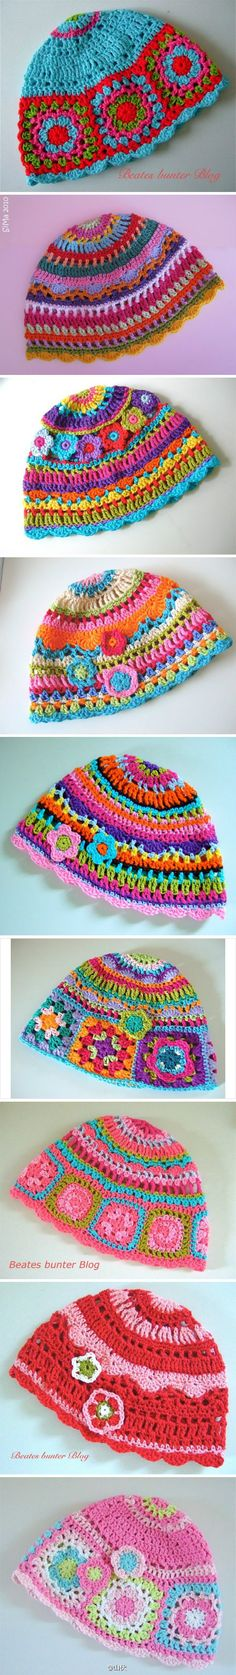 Handmade crochet crochet art of living